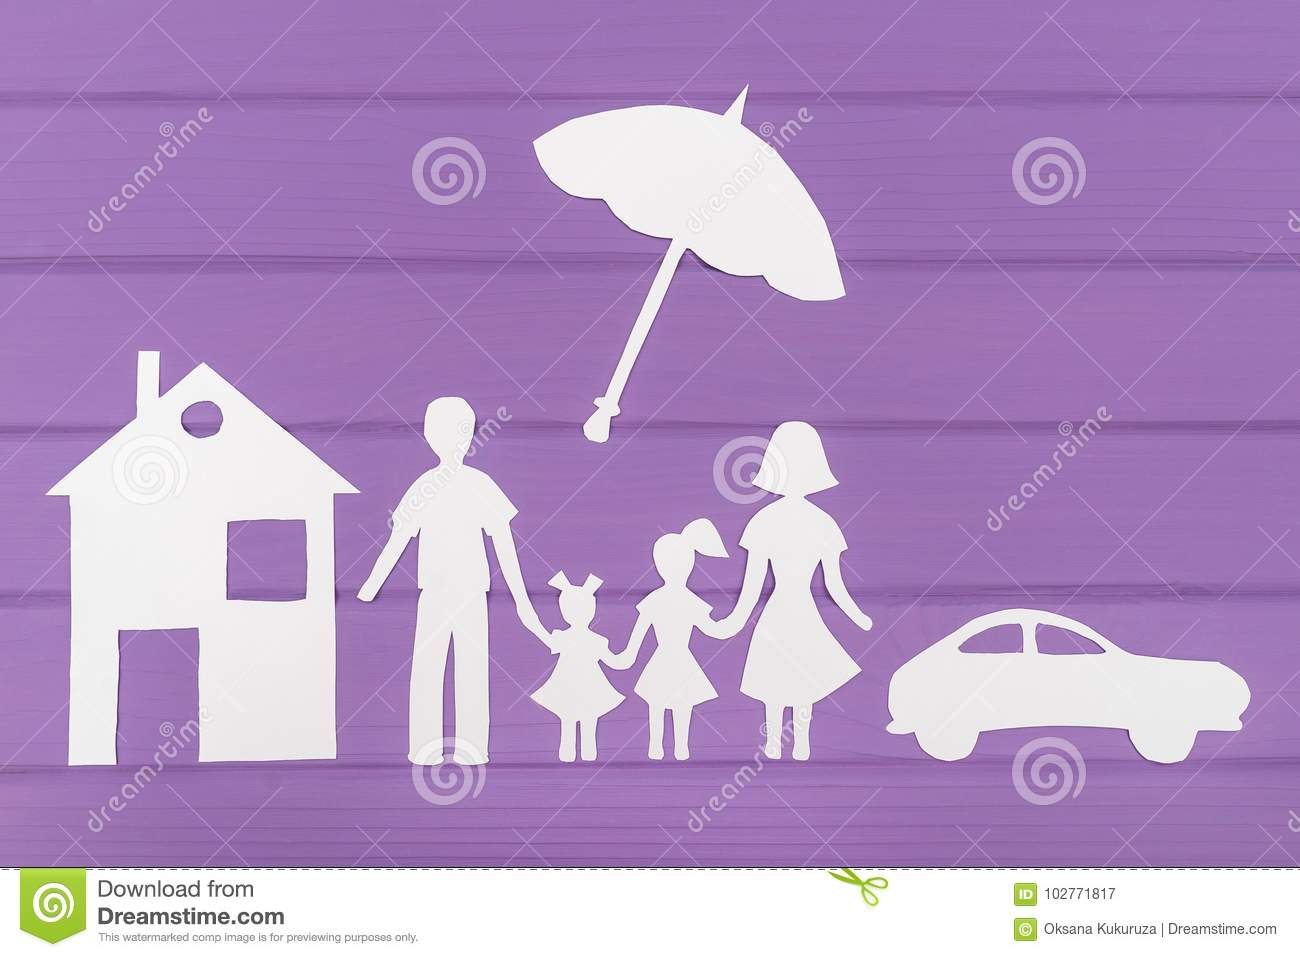 The Silhouettes Cut Out Of Paper Man And Woman With Two Girls Under Umbrella House Car Near On Purple Wooden Background